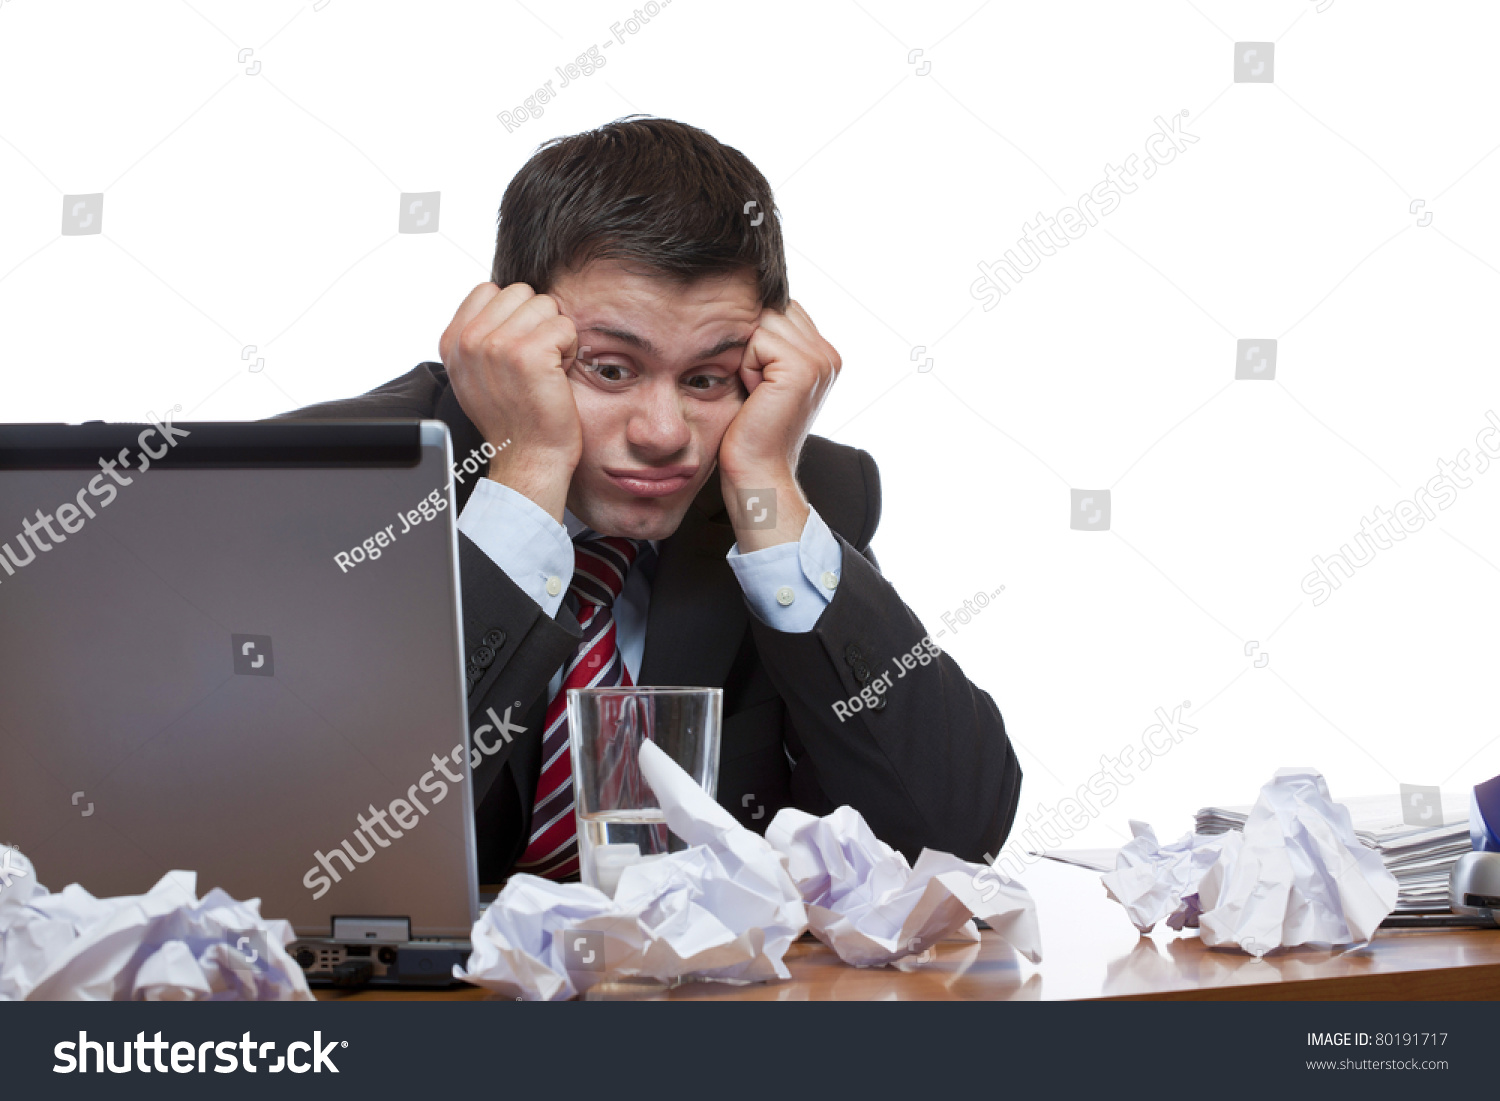 desperate frustrated man sitting paperwork at desk in office save to a lightbox